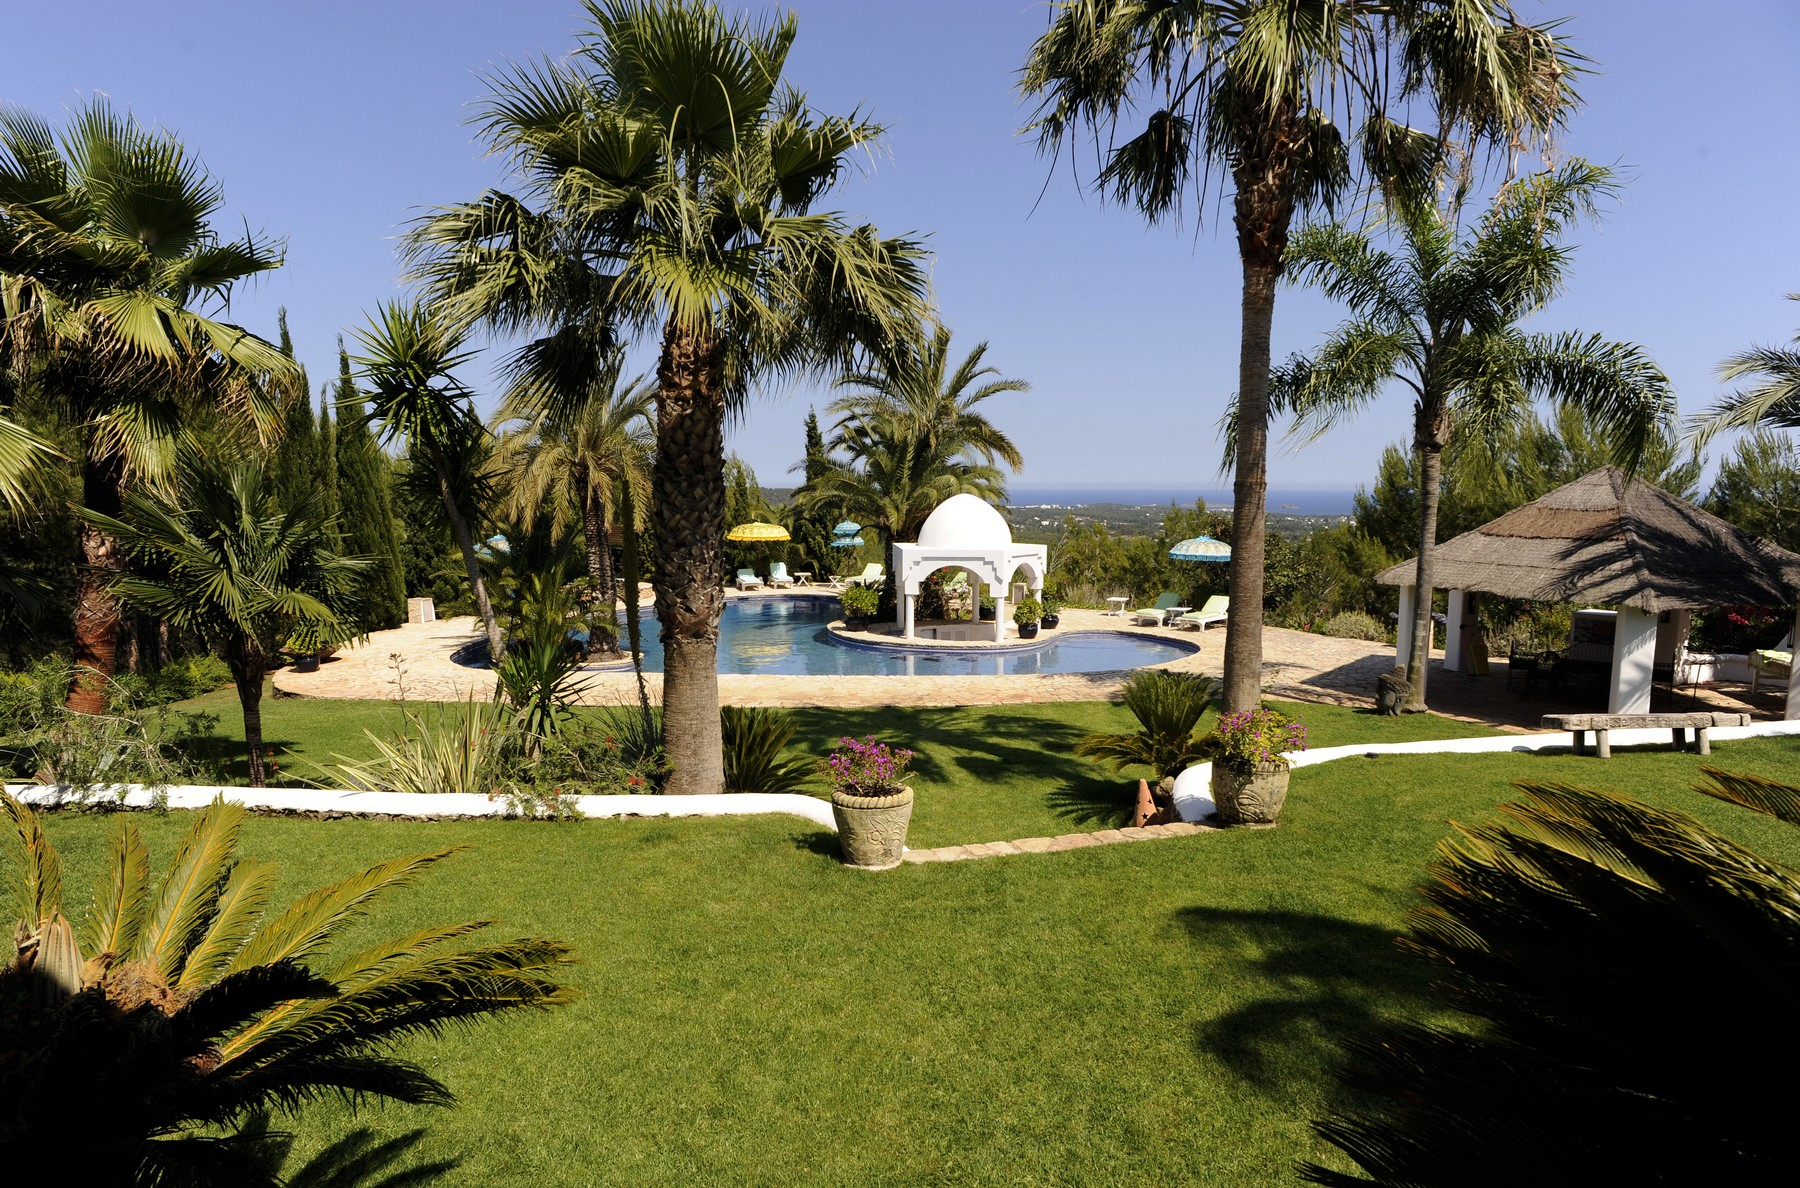 Single Family Home for Rent at Luxury Retreat With Sea Views Ibiza, Balearic Islands 07819 Spain